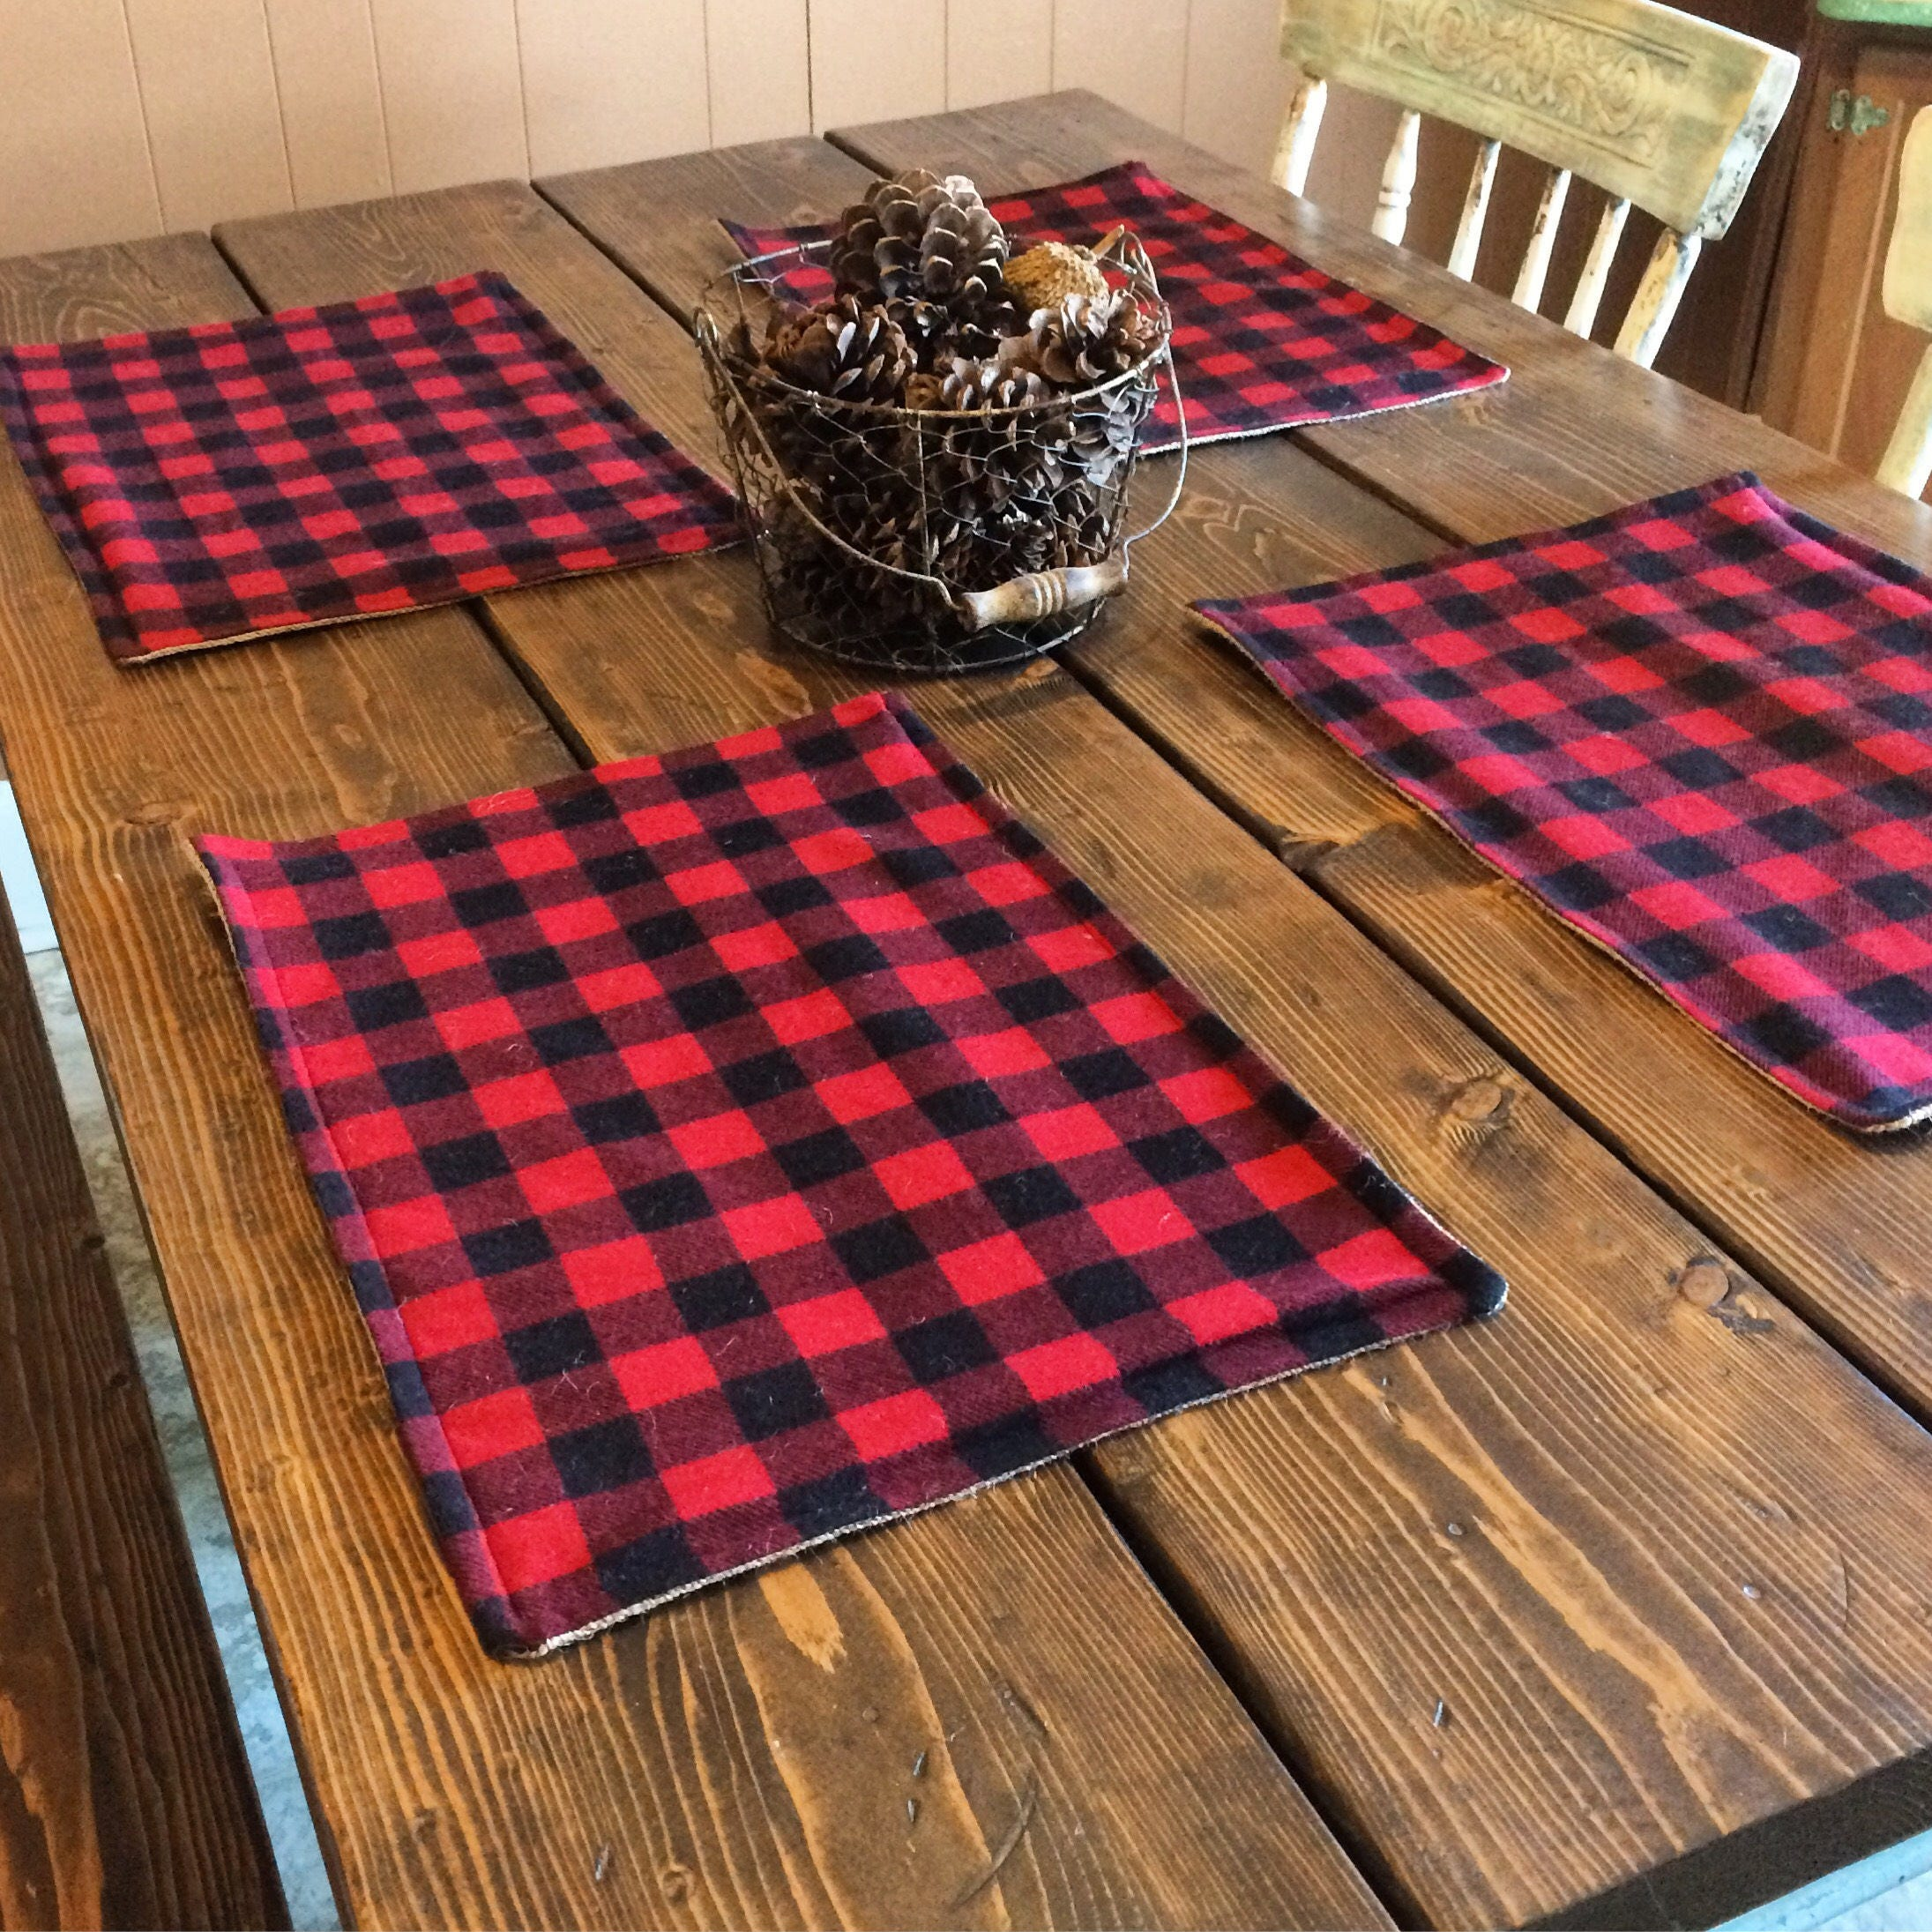 Buffalo Plaid U0026 Burlap Placemats  Red And Black Check  Lined With  Burlap Cabin Decor  Farmhouse Decor  Lodge Decor